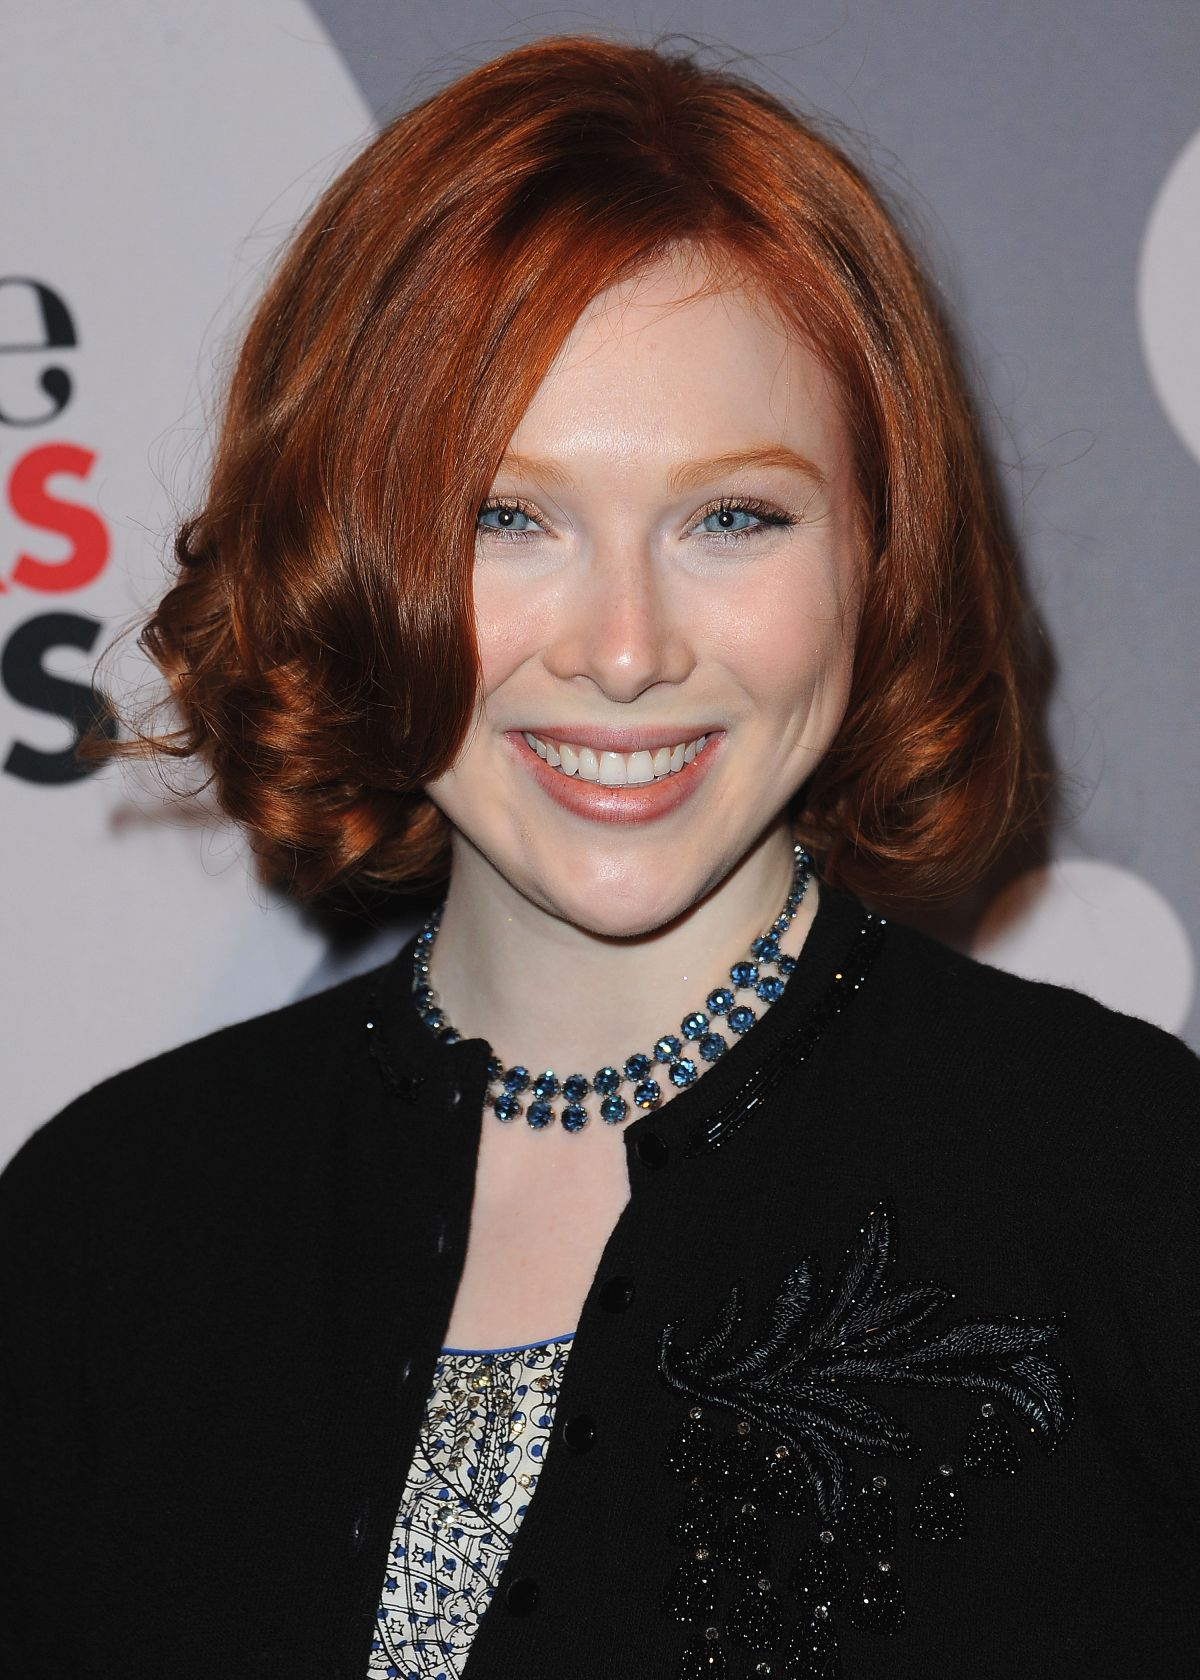 MOLLY QUINN at Minnie Mouse Rocks the Dots Art and Fashion Exhibit in Los Angeles 01/22/2016